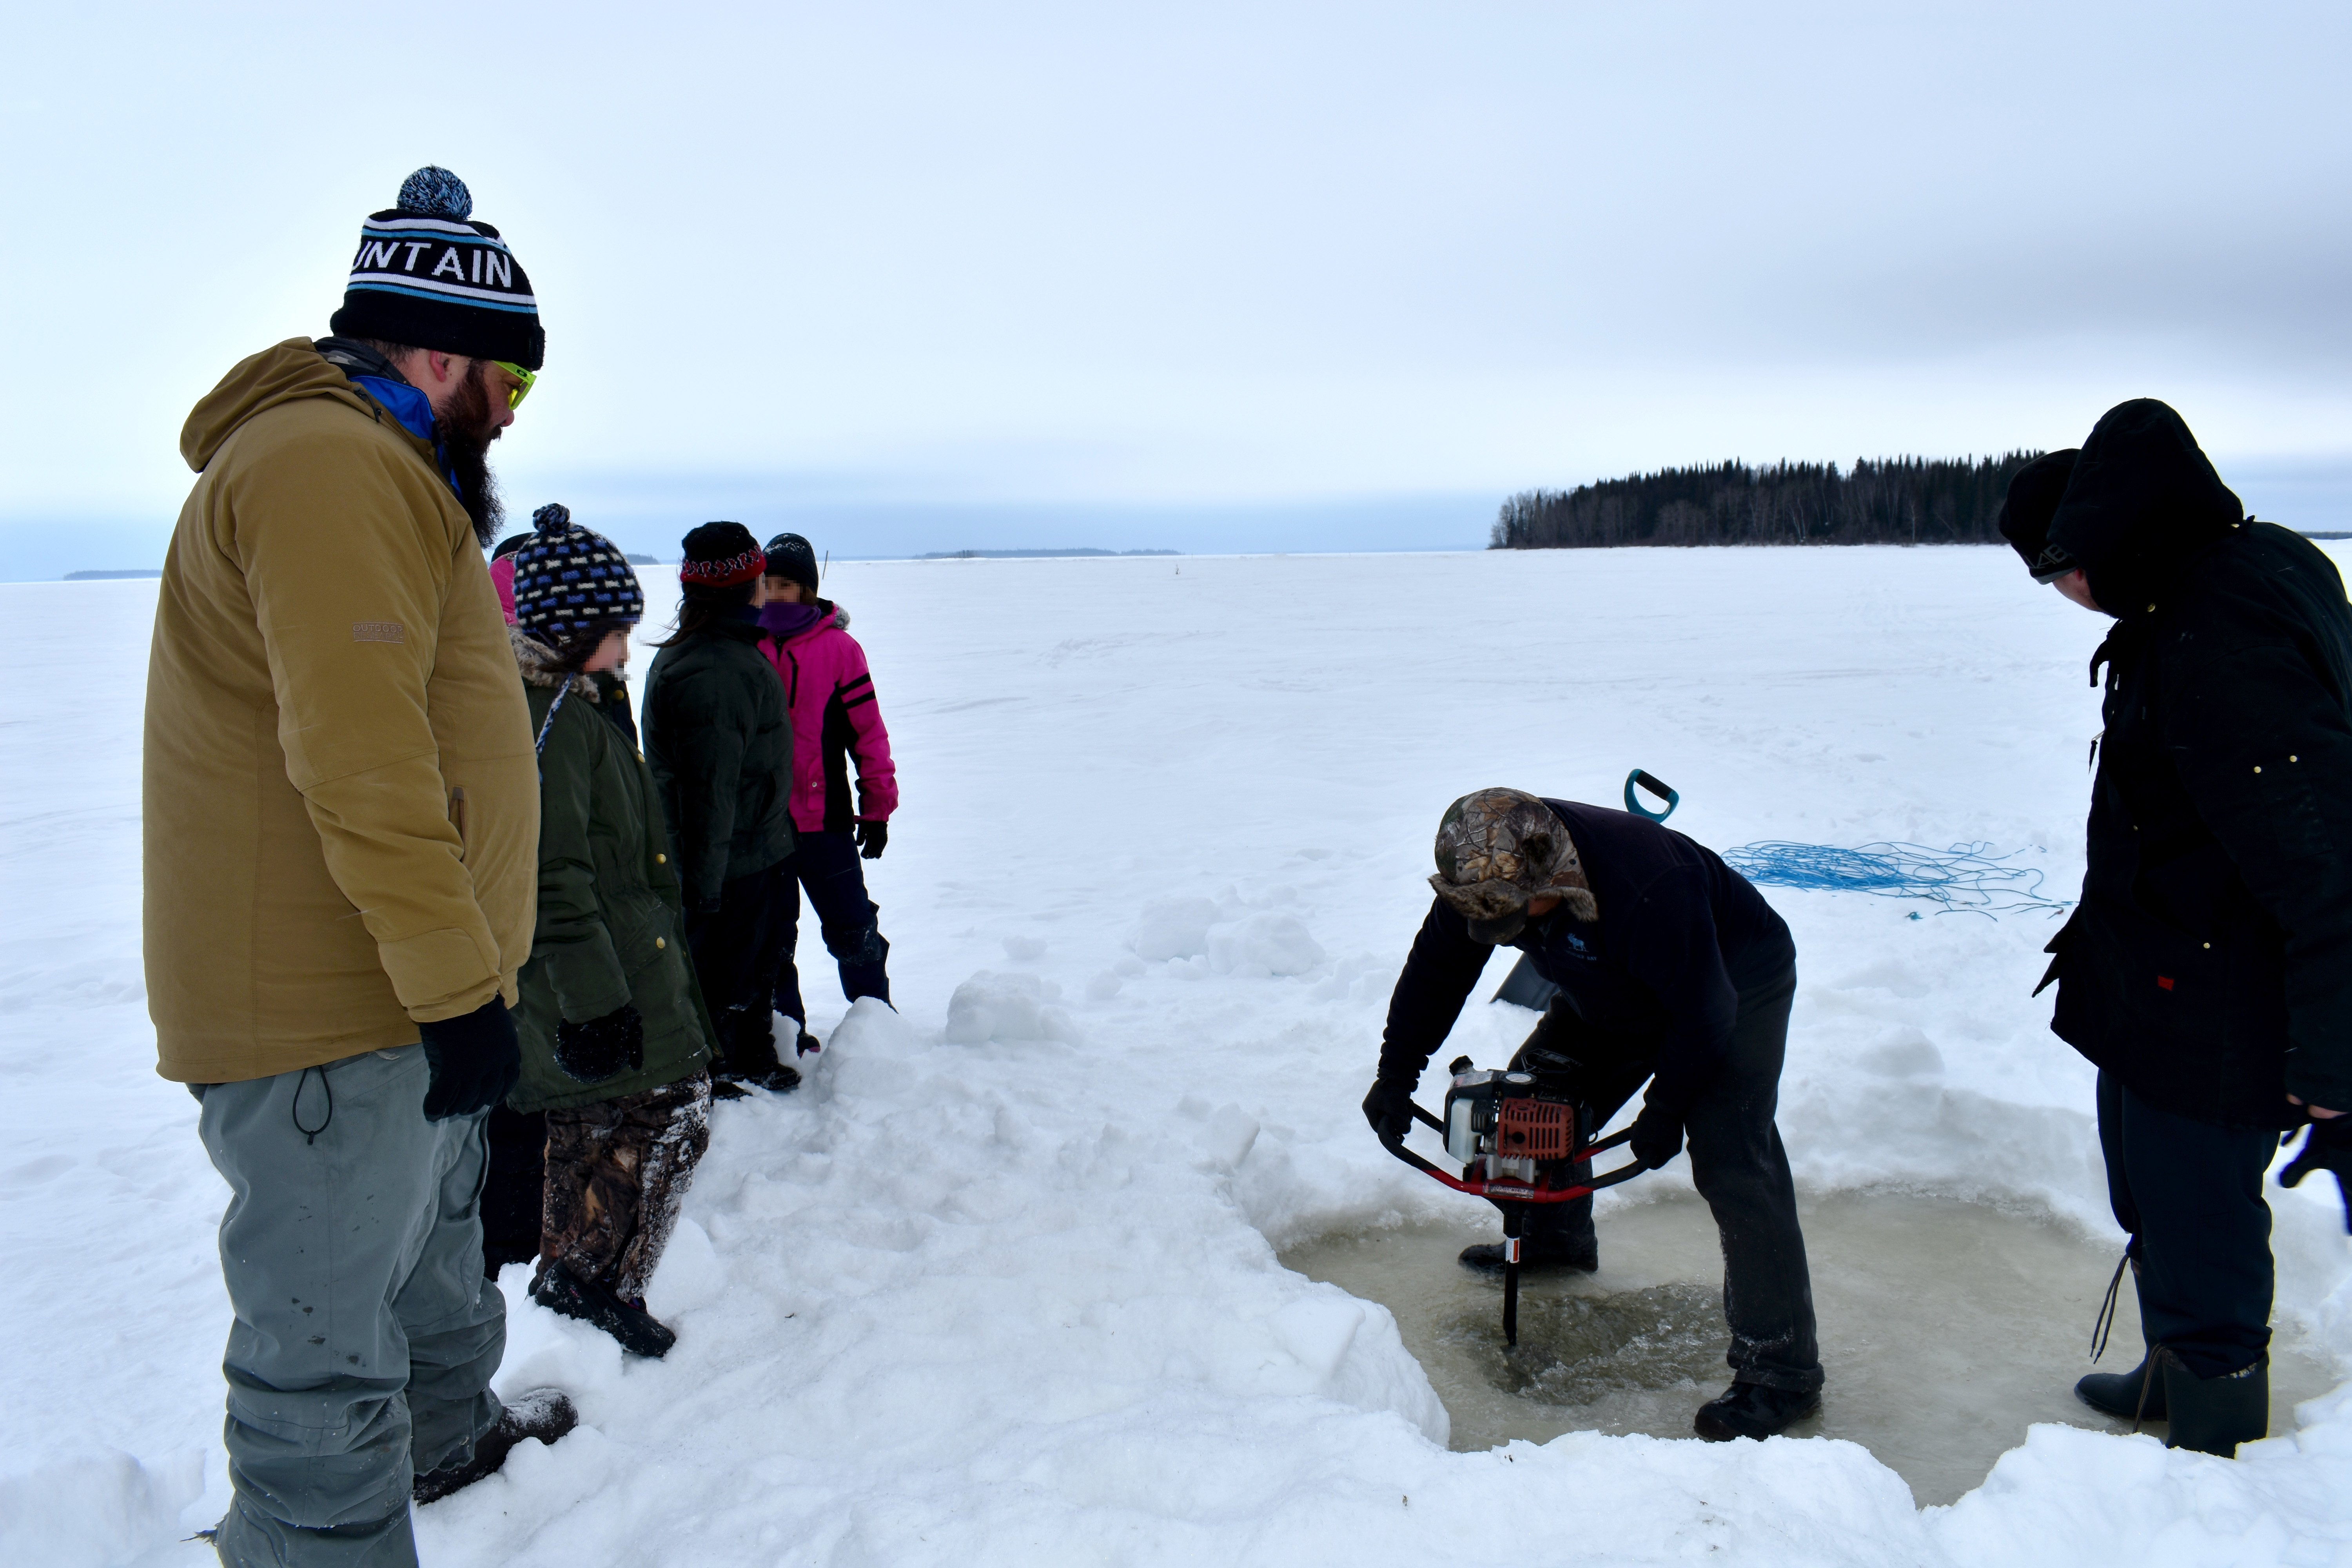 A teacher and his students watch as a hole is drilled into the ice